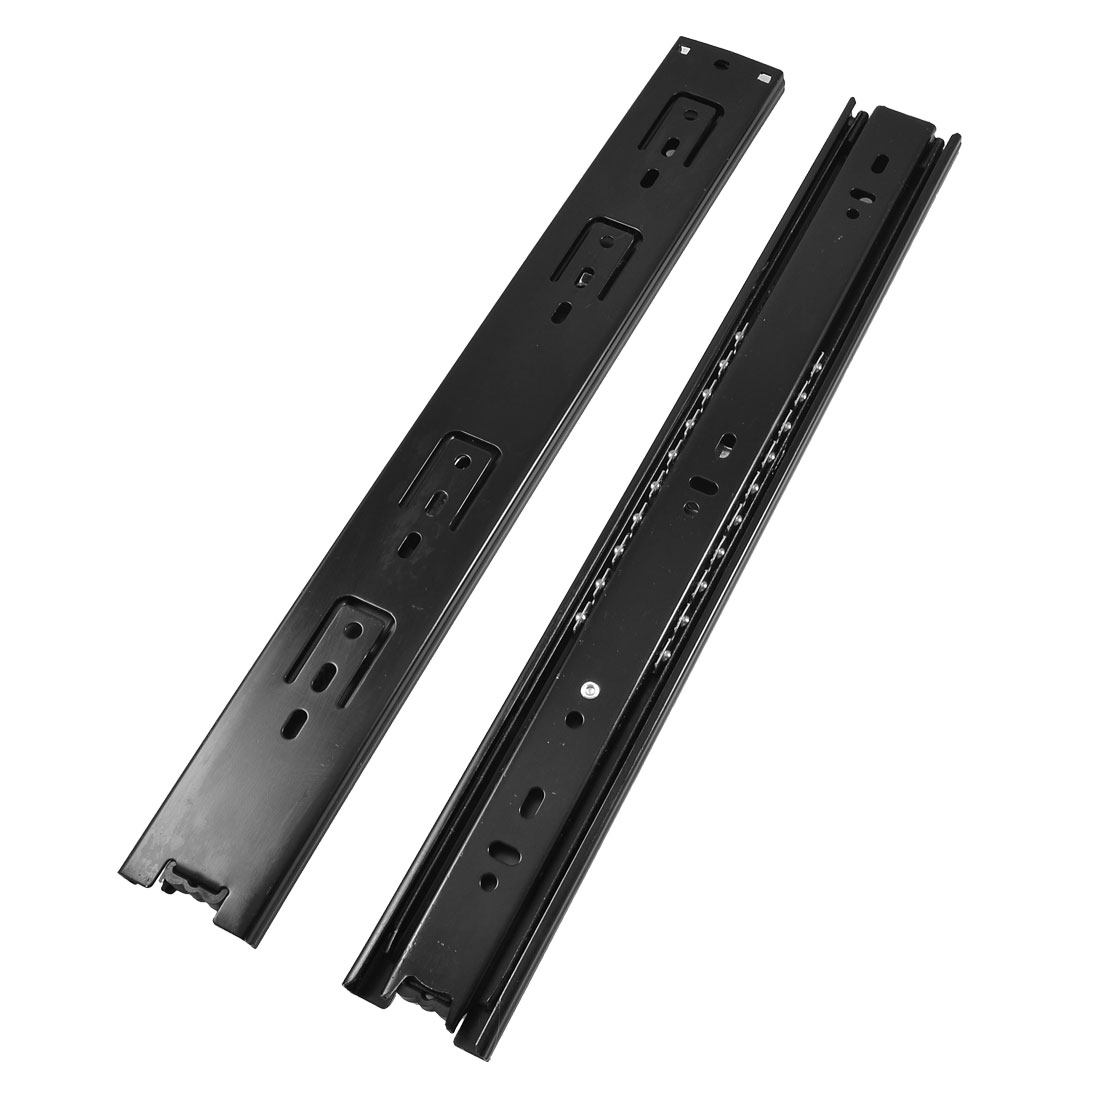 "2 Pcs 14"" Long 3 Sections Side Mount Metal Drawer Ball Slide Black"